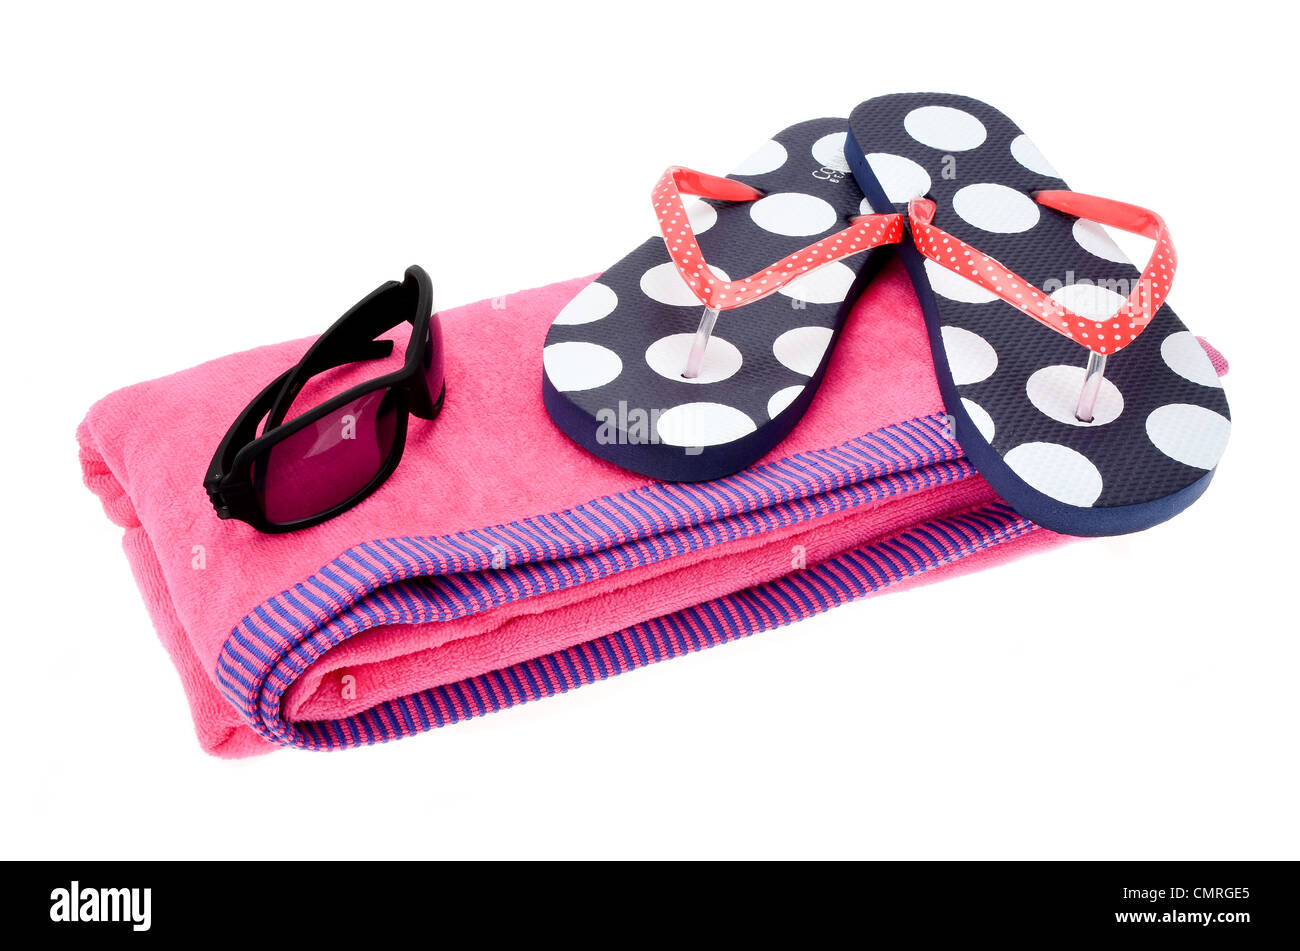 028b6d4ccd9587 Pink beach towel and a pair of flipflops and sunglasses on a white  background - Stock